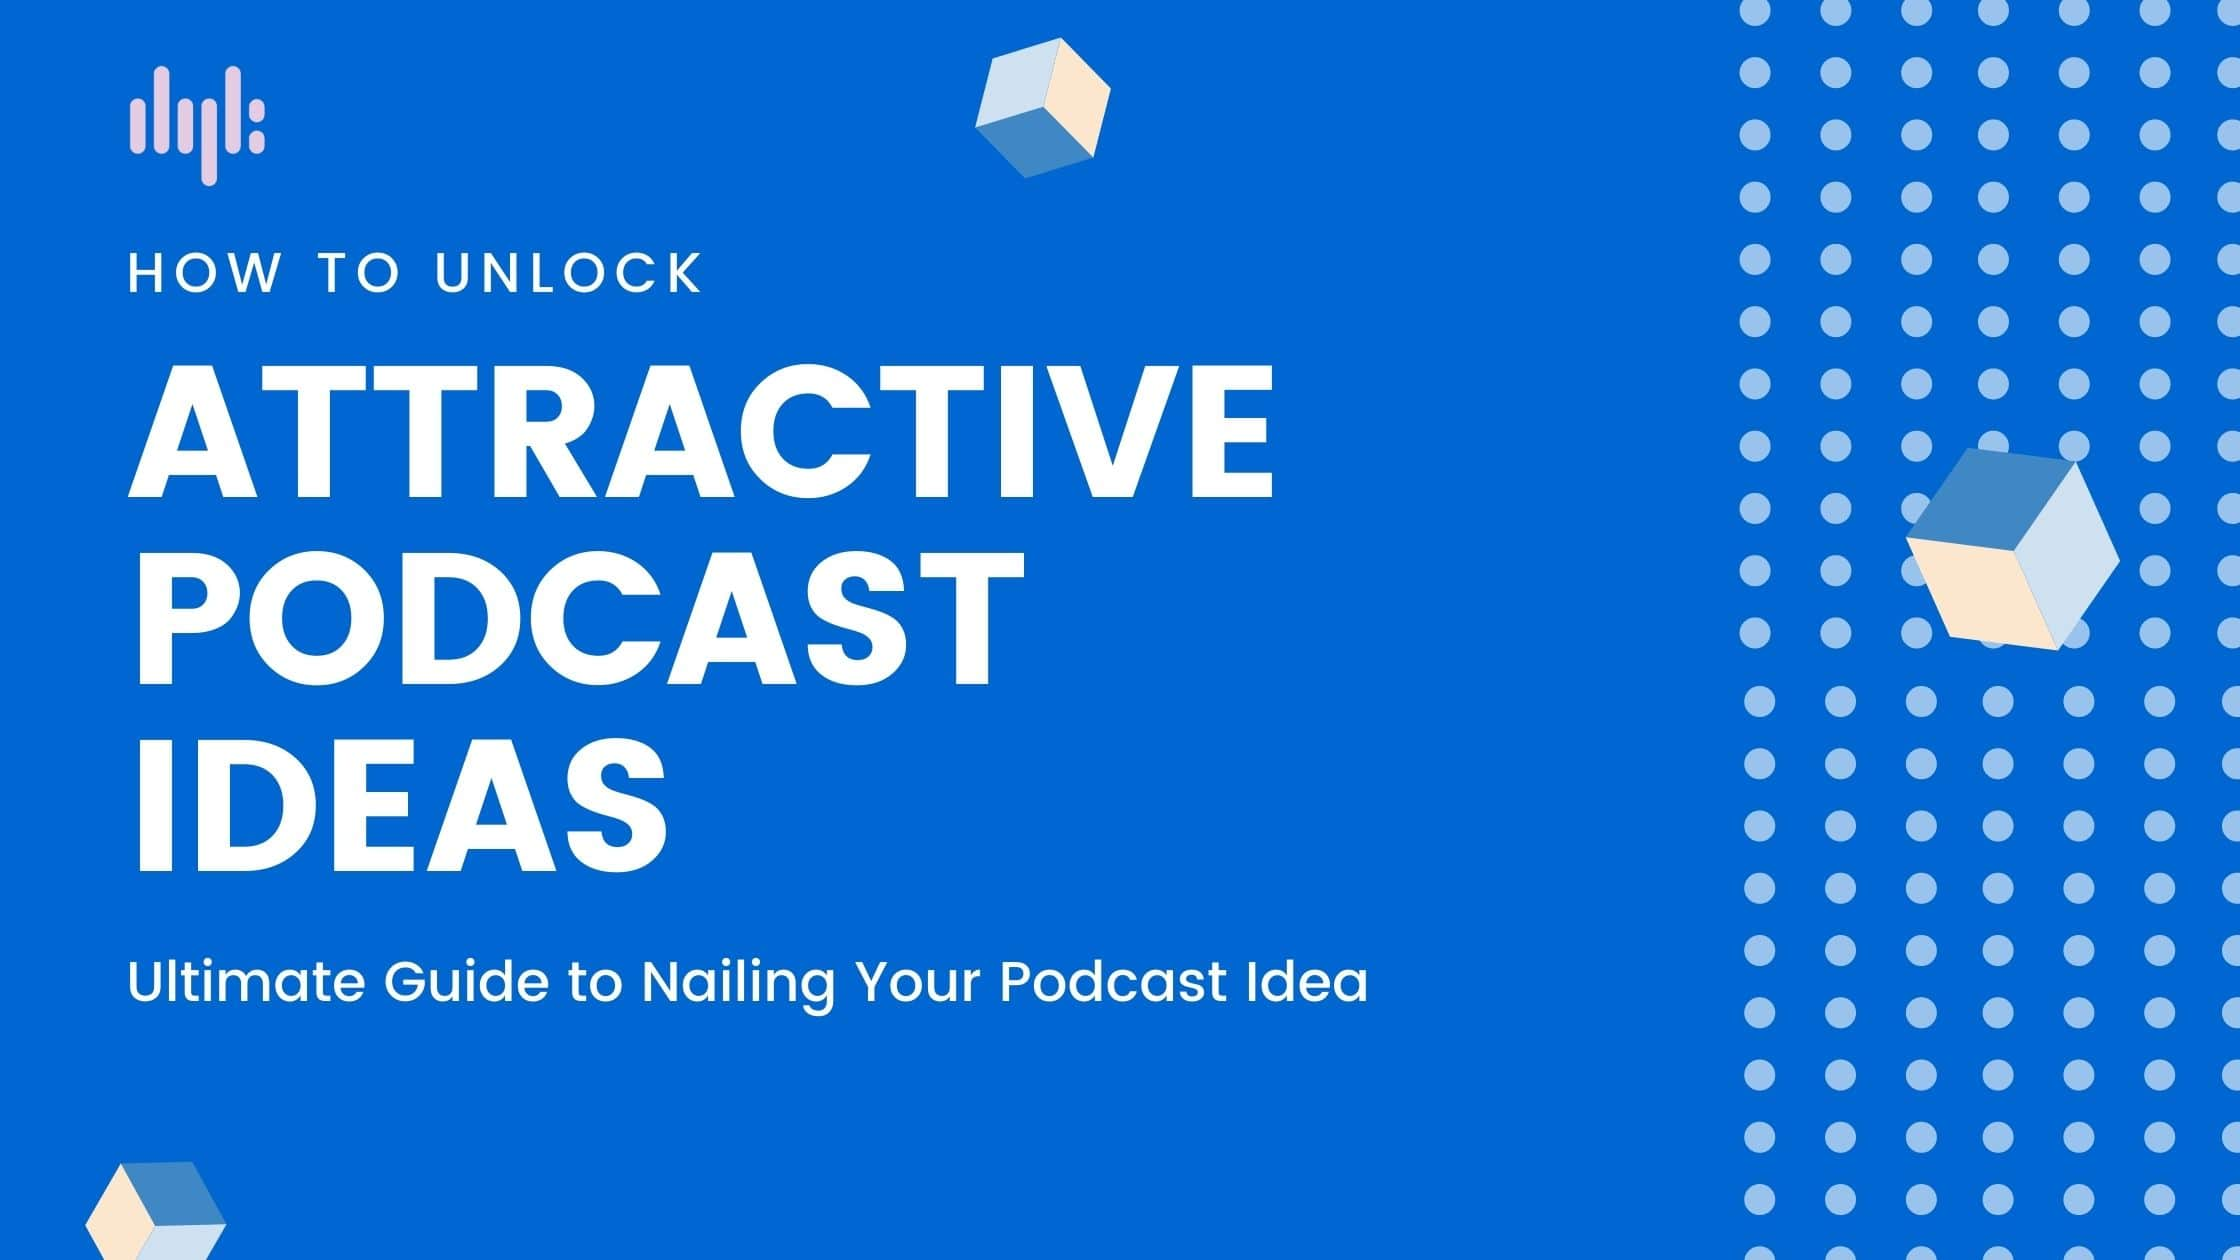 how to unlock attractive podcast ideas with podcast topics generator